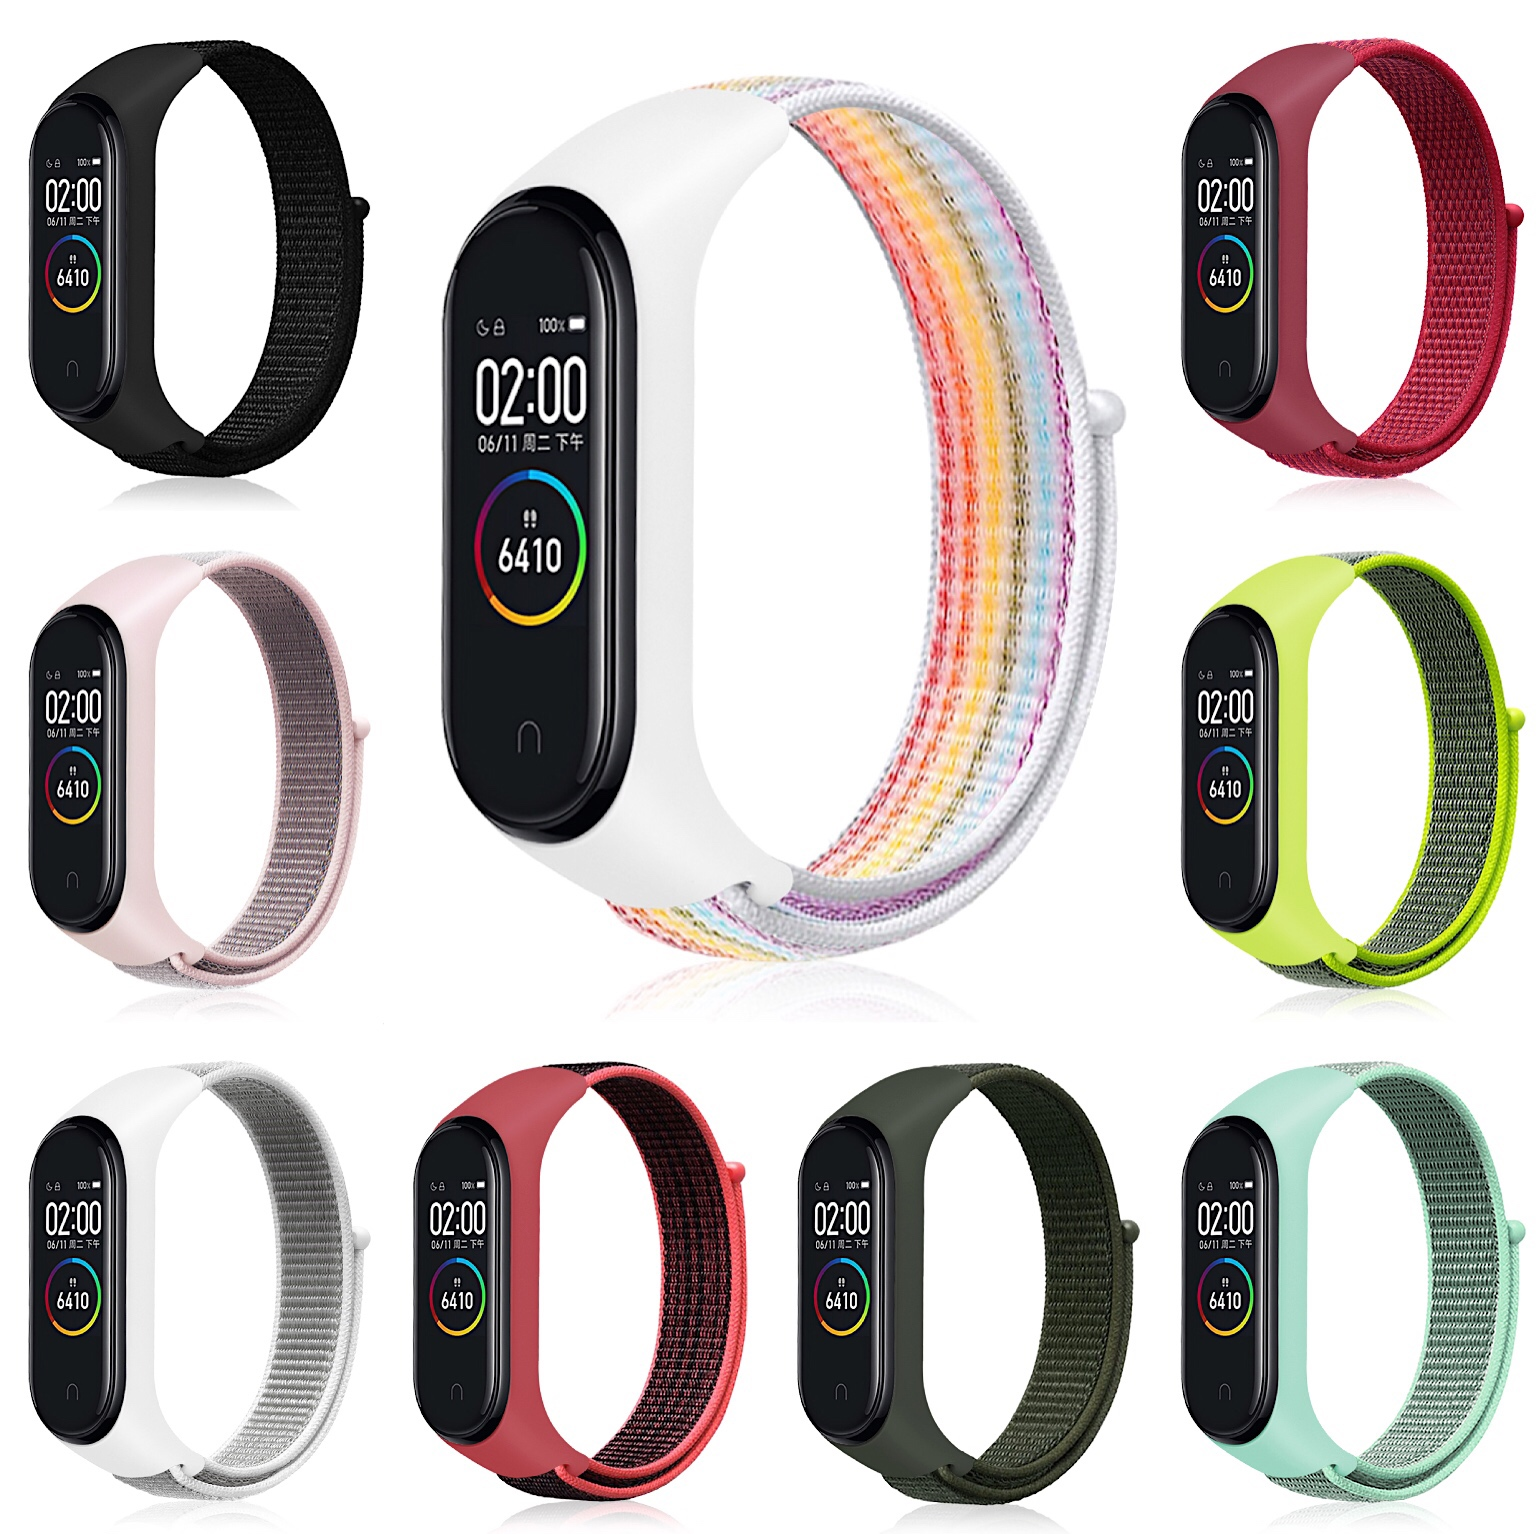 Nylon Loop Replaceable Bracelet For Xiaomi Mi Band 3 Sports Wristband Breathable Strap For Xiaomi Miband 4 Smart Watch Accessori